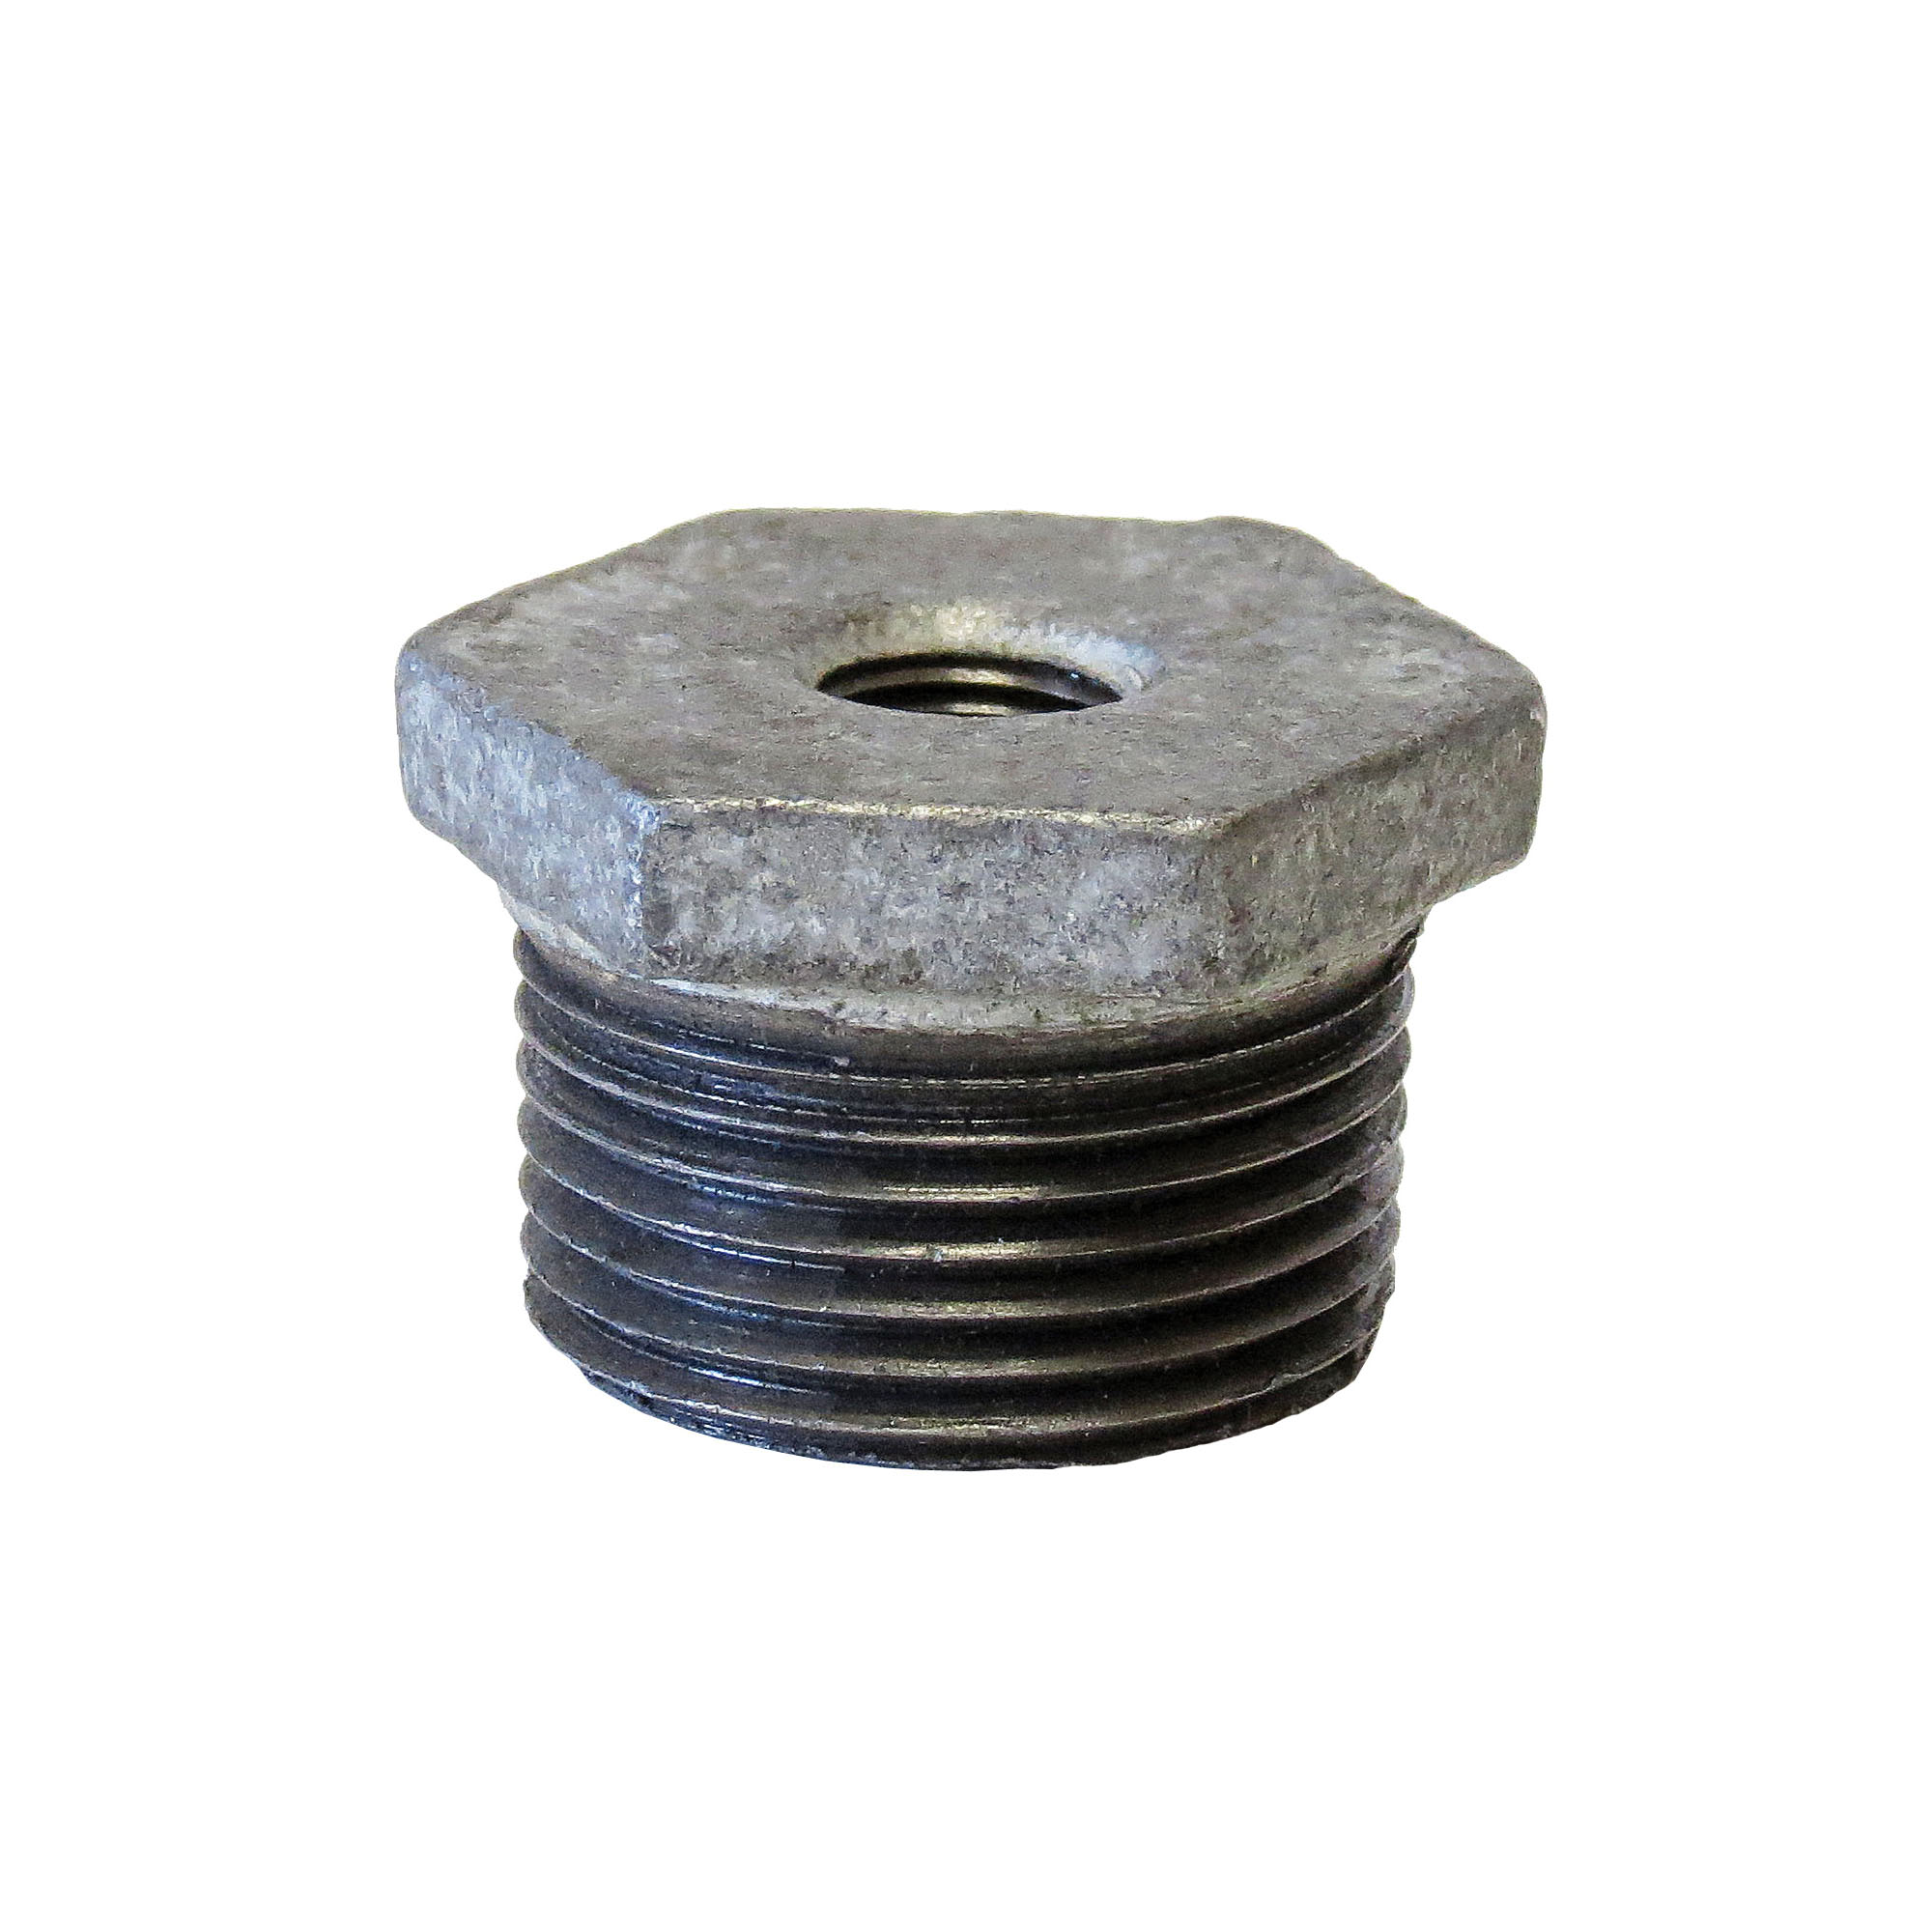 Anvil® 0319907564 Hex Head Pipe Bushing, 1-1/2 x 3/8 in Nominal, Cast Iron, Galvanized, Domestic